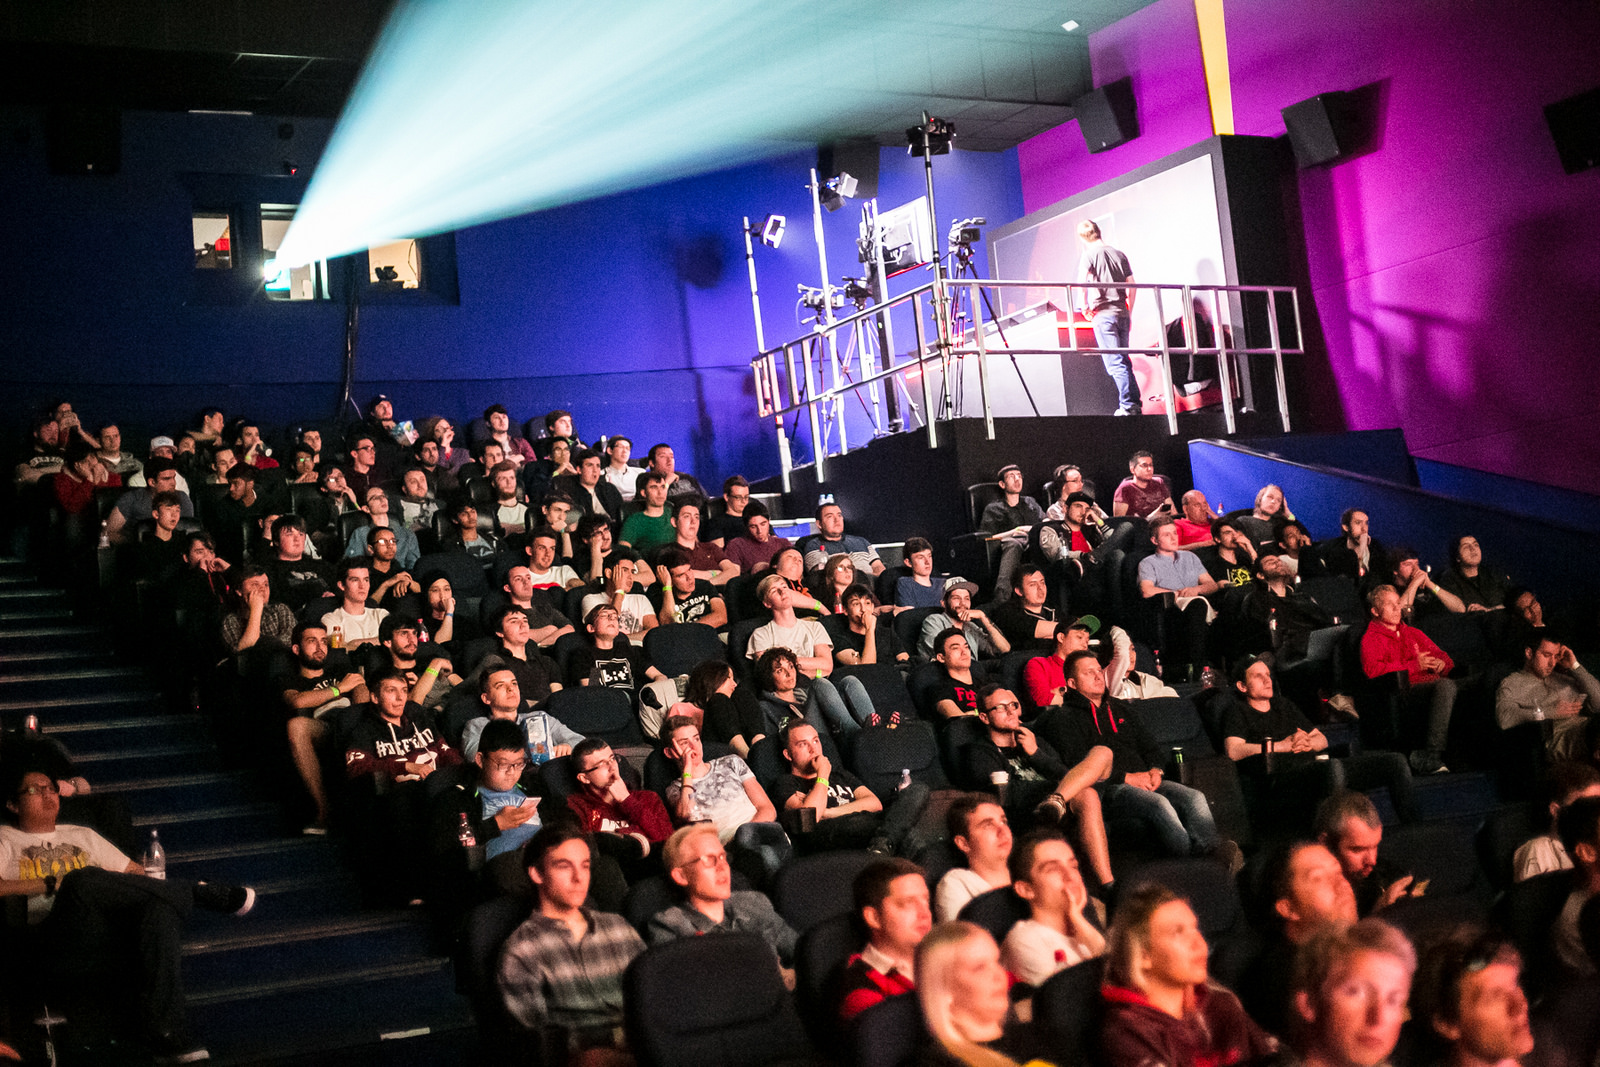 The crowd at the Gfinity Arena